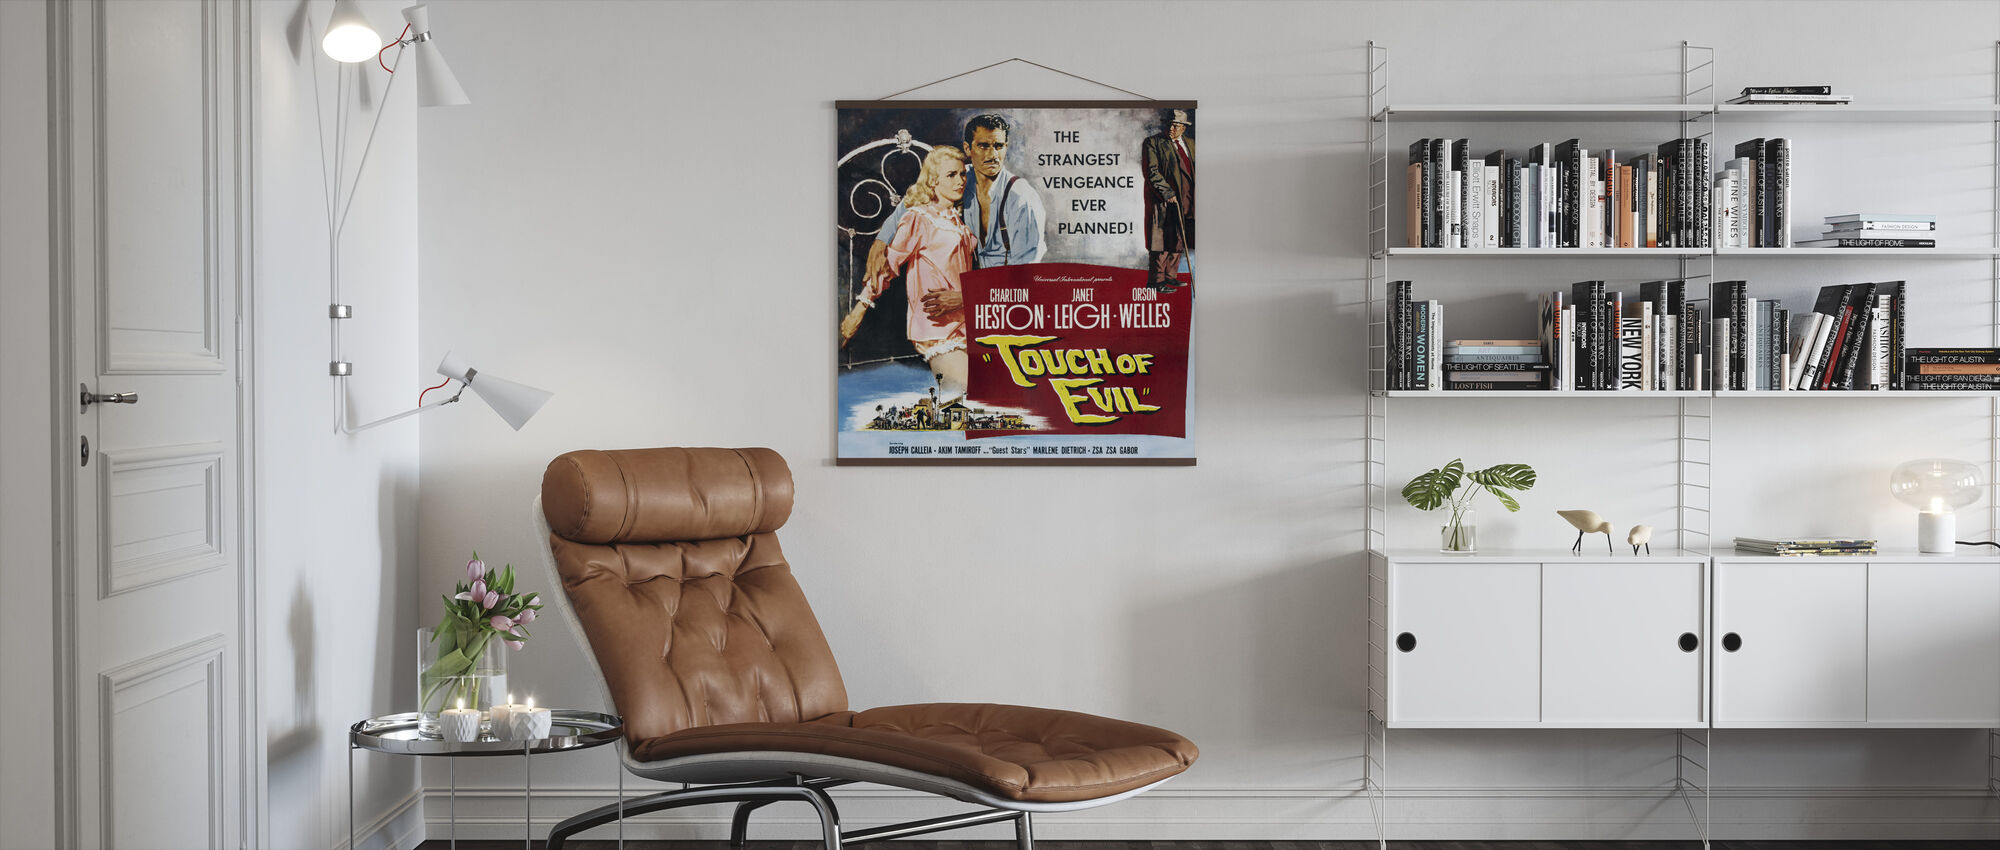 Touch of Evil - Poster - Living Room